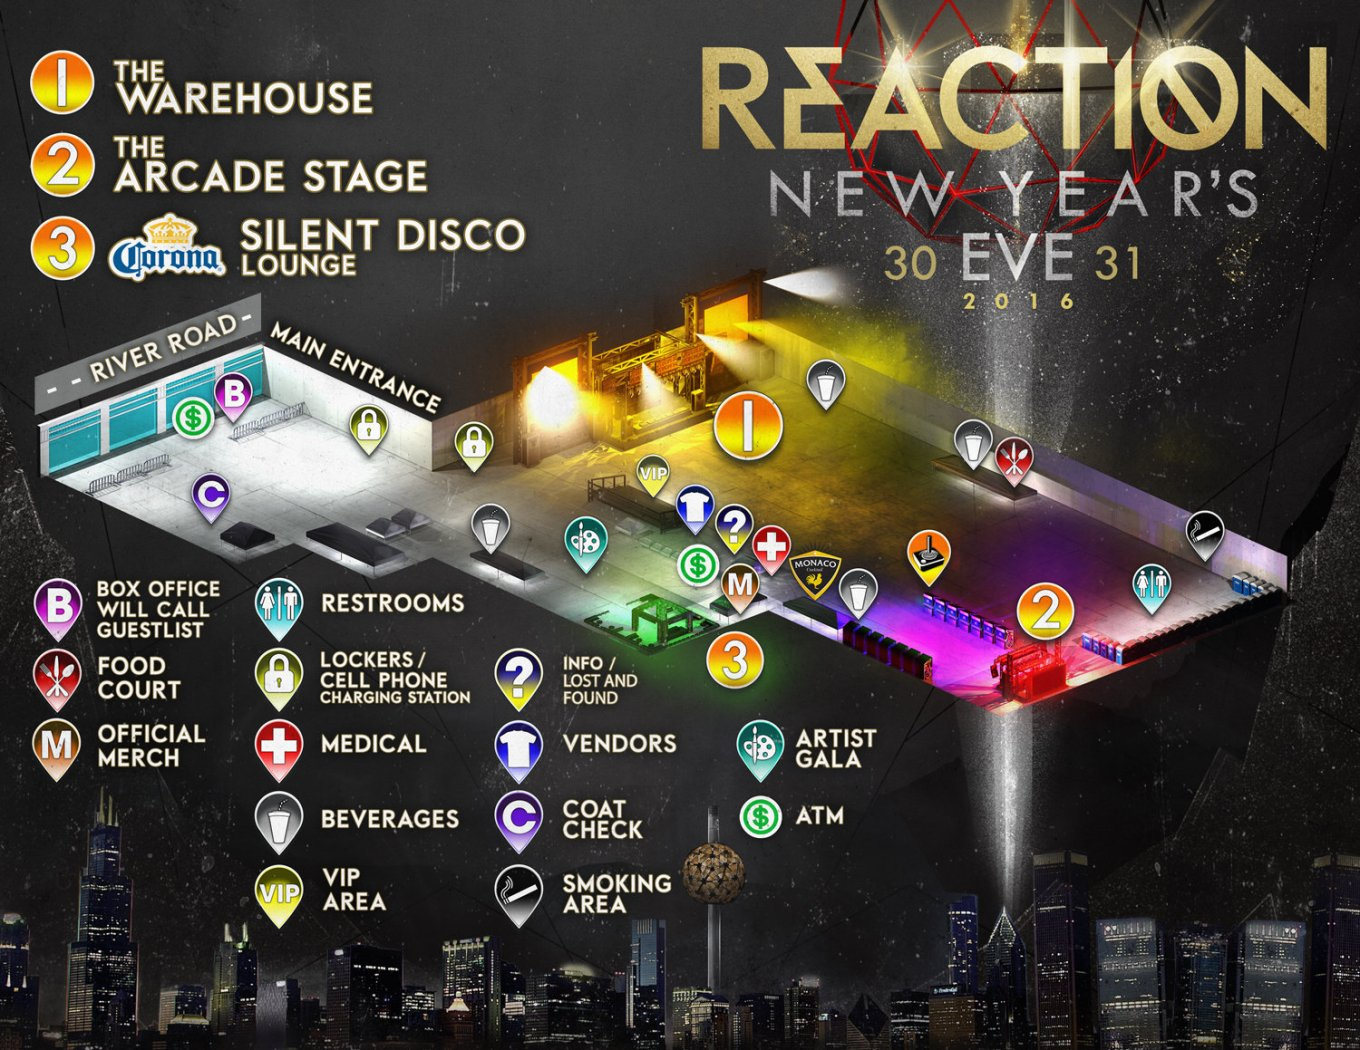 Reaction NYE 2016 Map